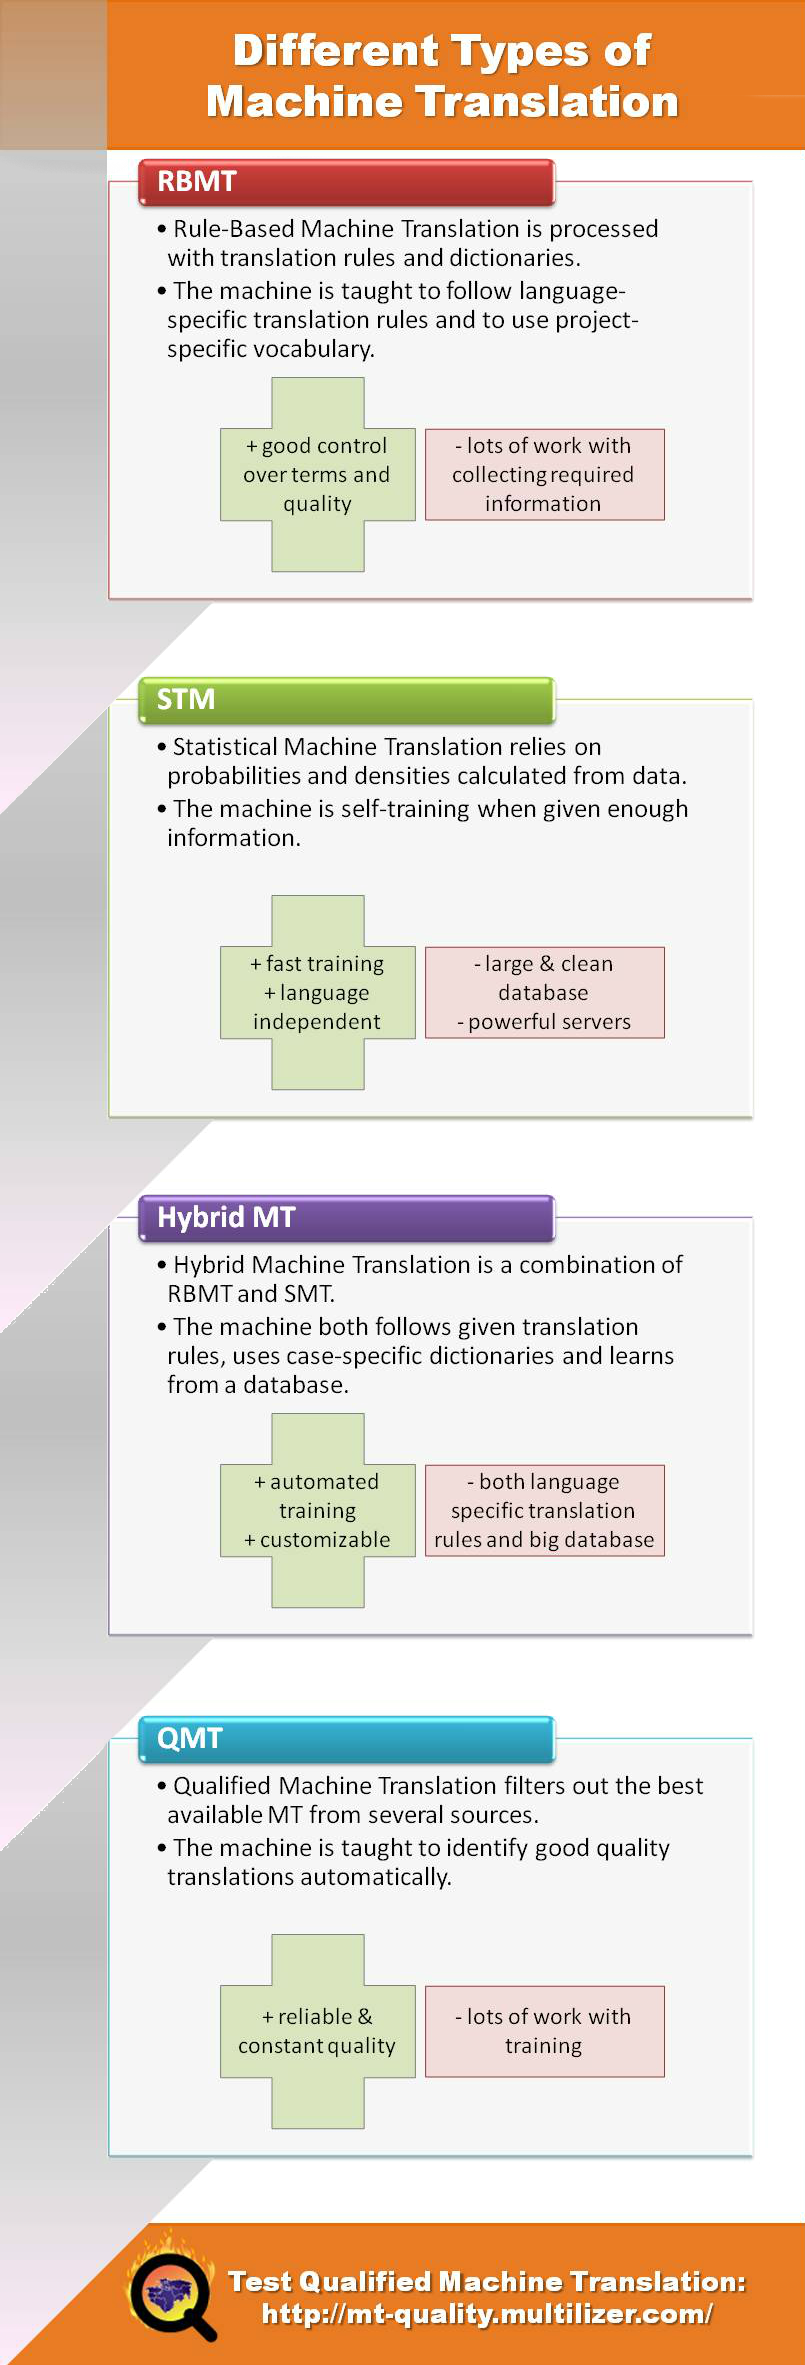 Rule-based macine translation, Statistical machine translation, Hybrid MT and Qualified machine translation explained